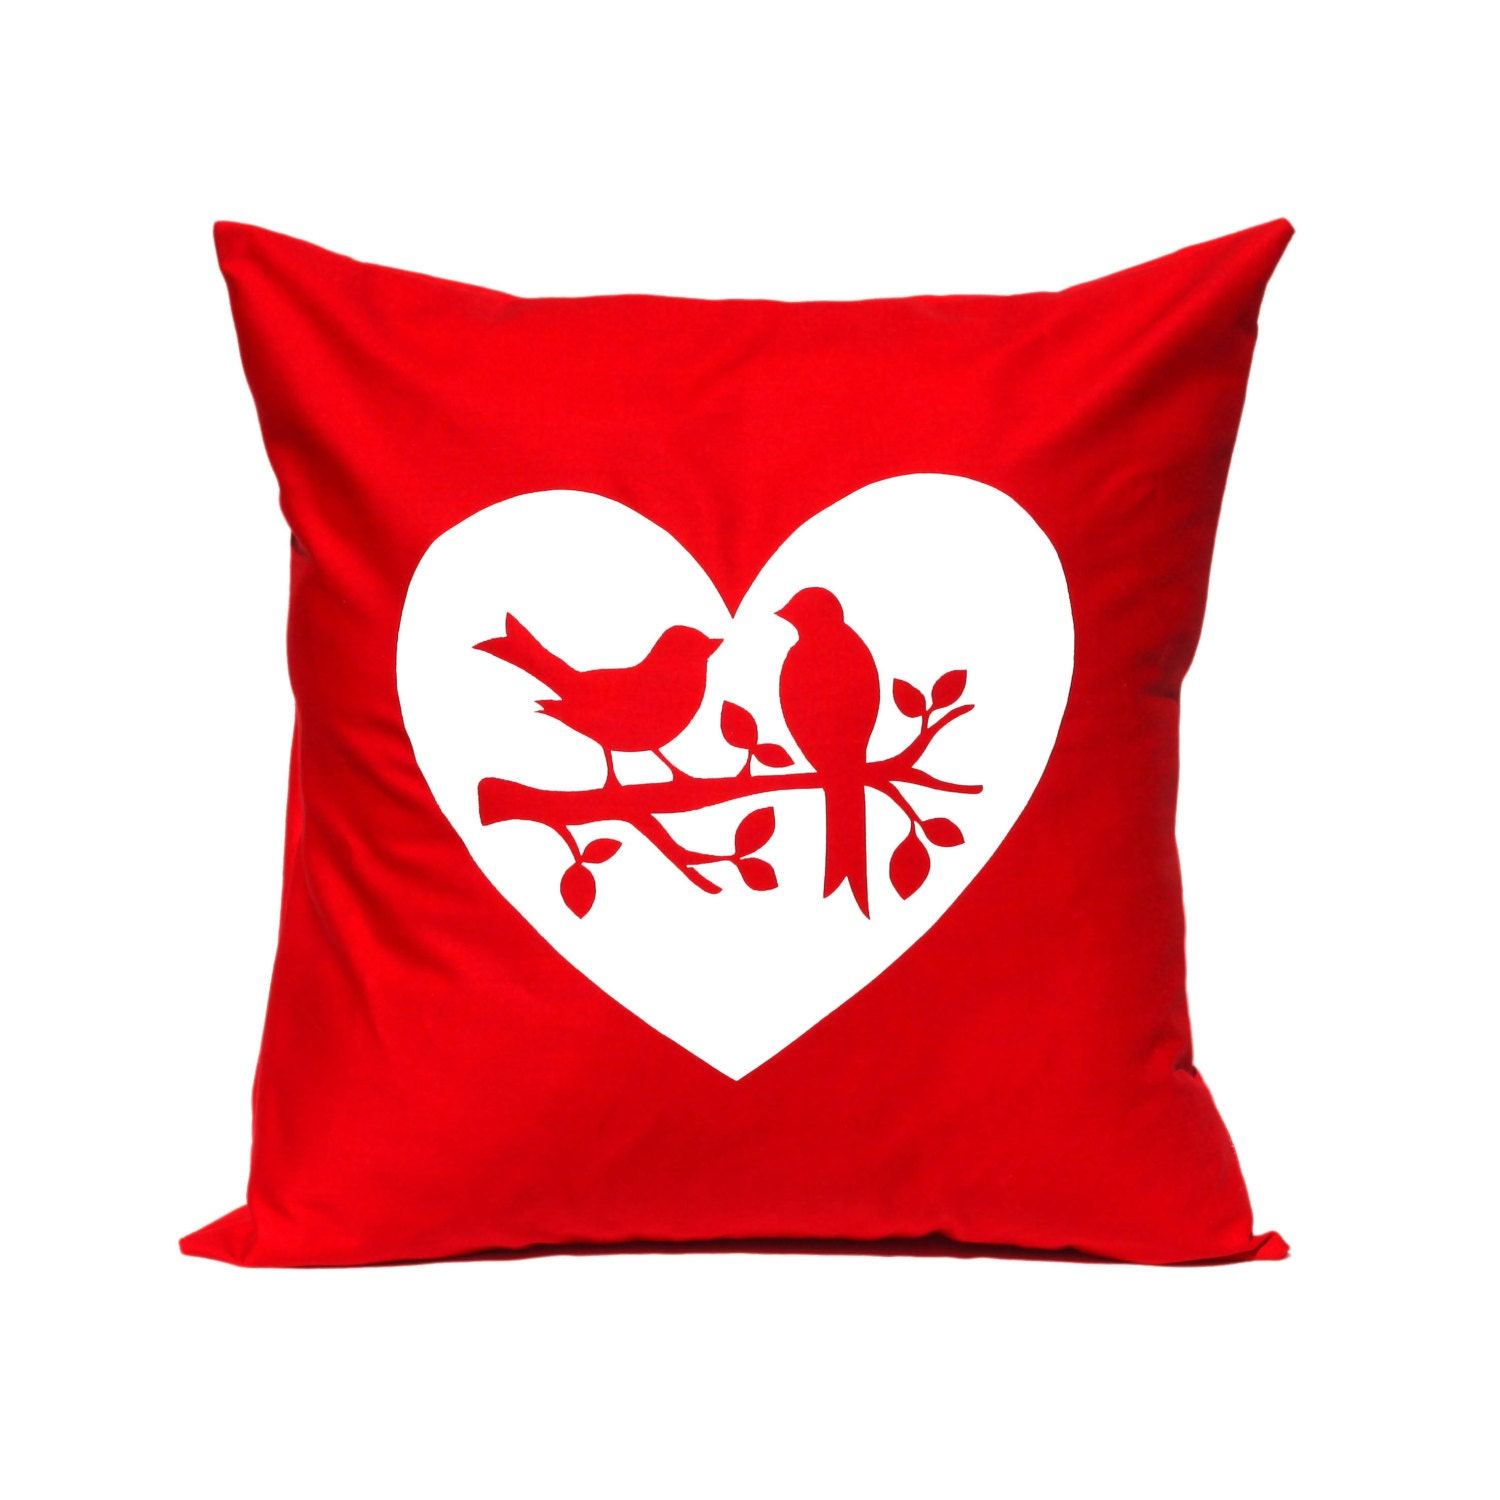 Throw Pillow Love Birds in RED Decorative by linneaswedishdesign